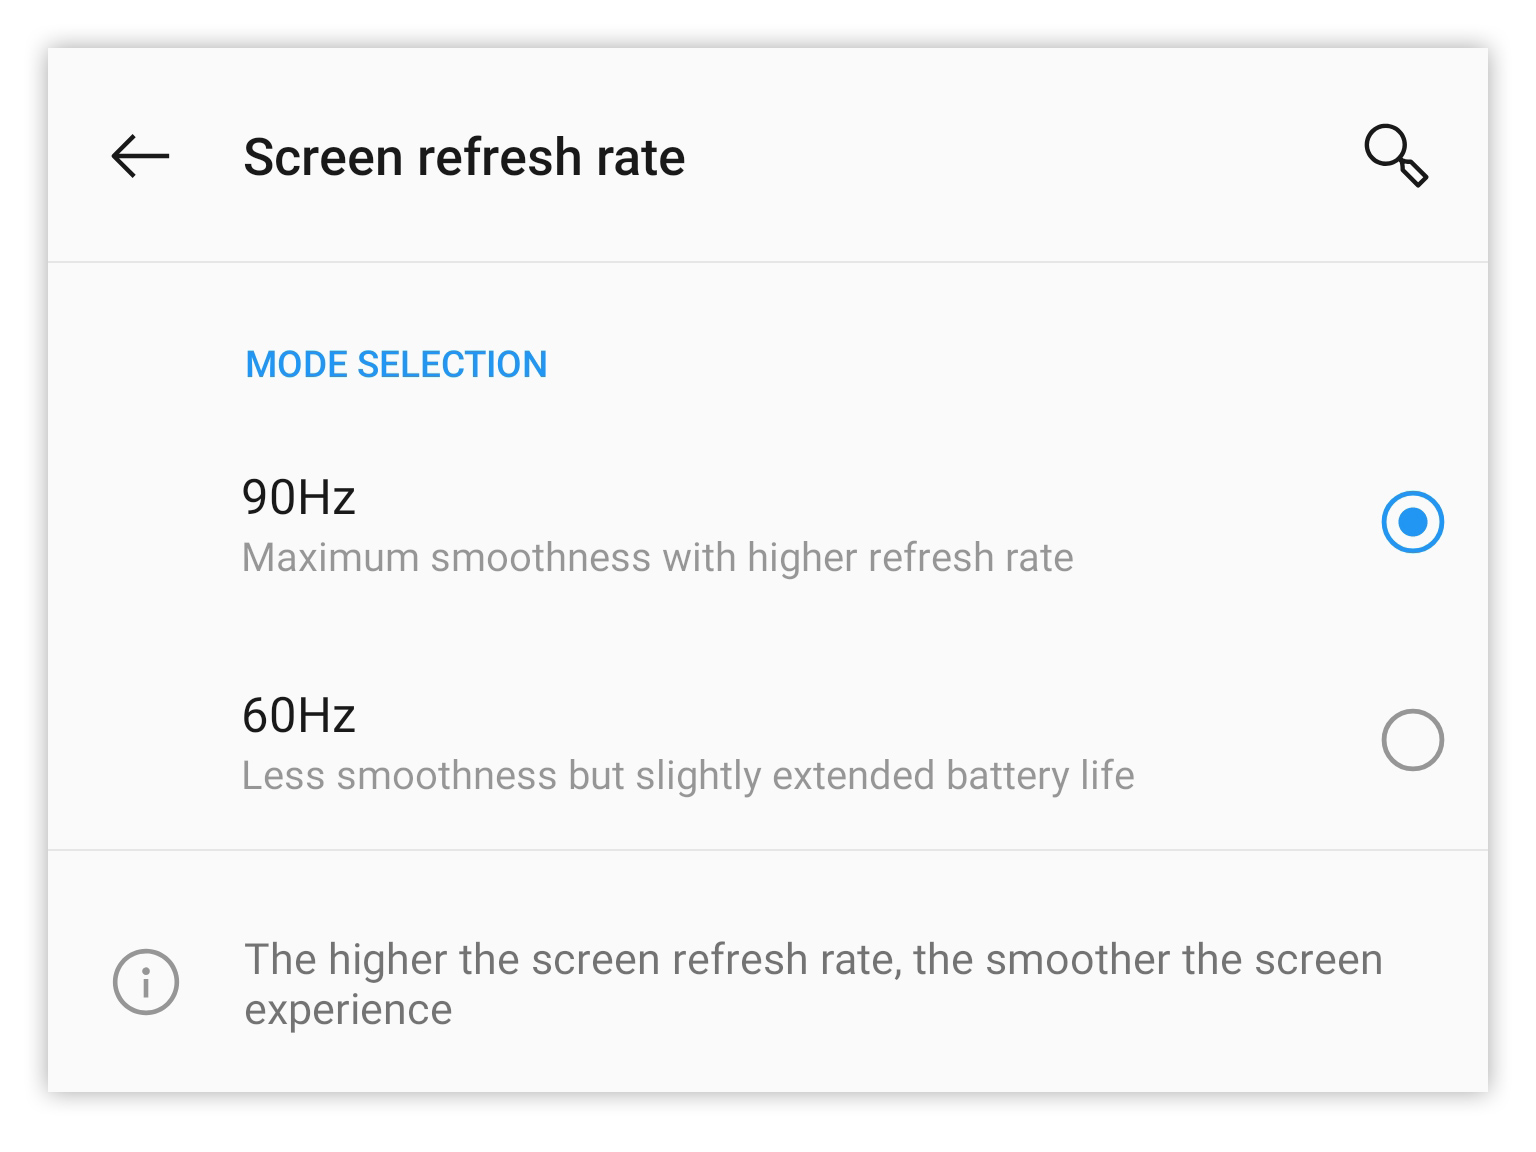 Silky-smooth interface or a bit more battery life? You get to pick.